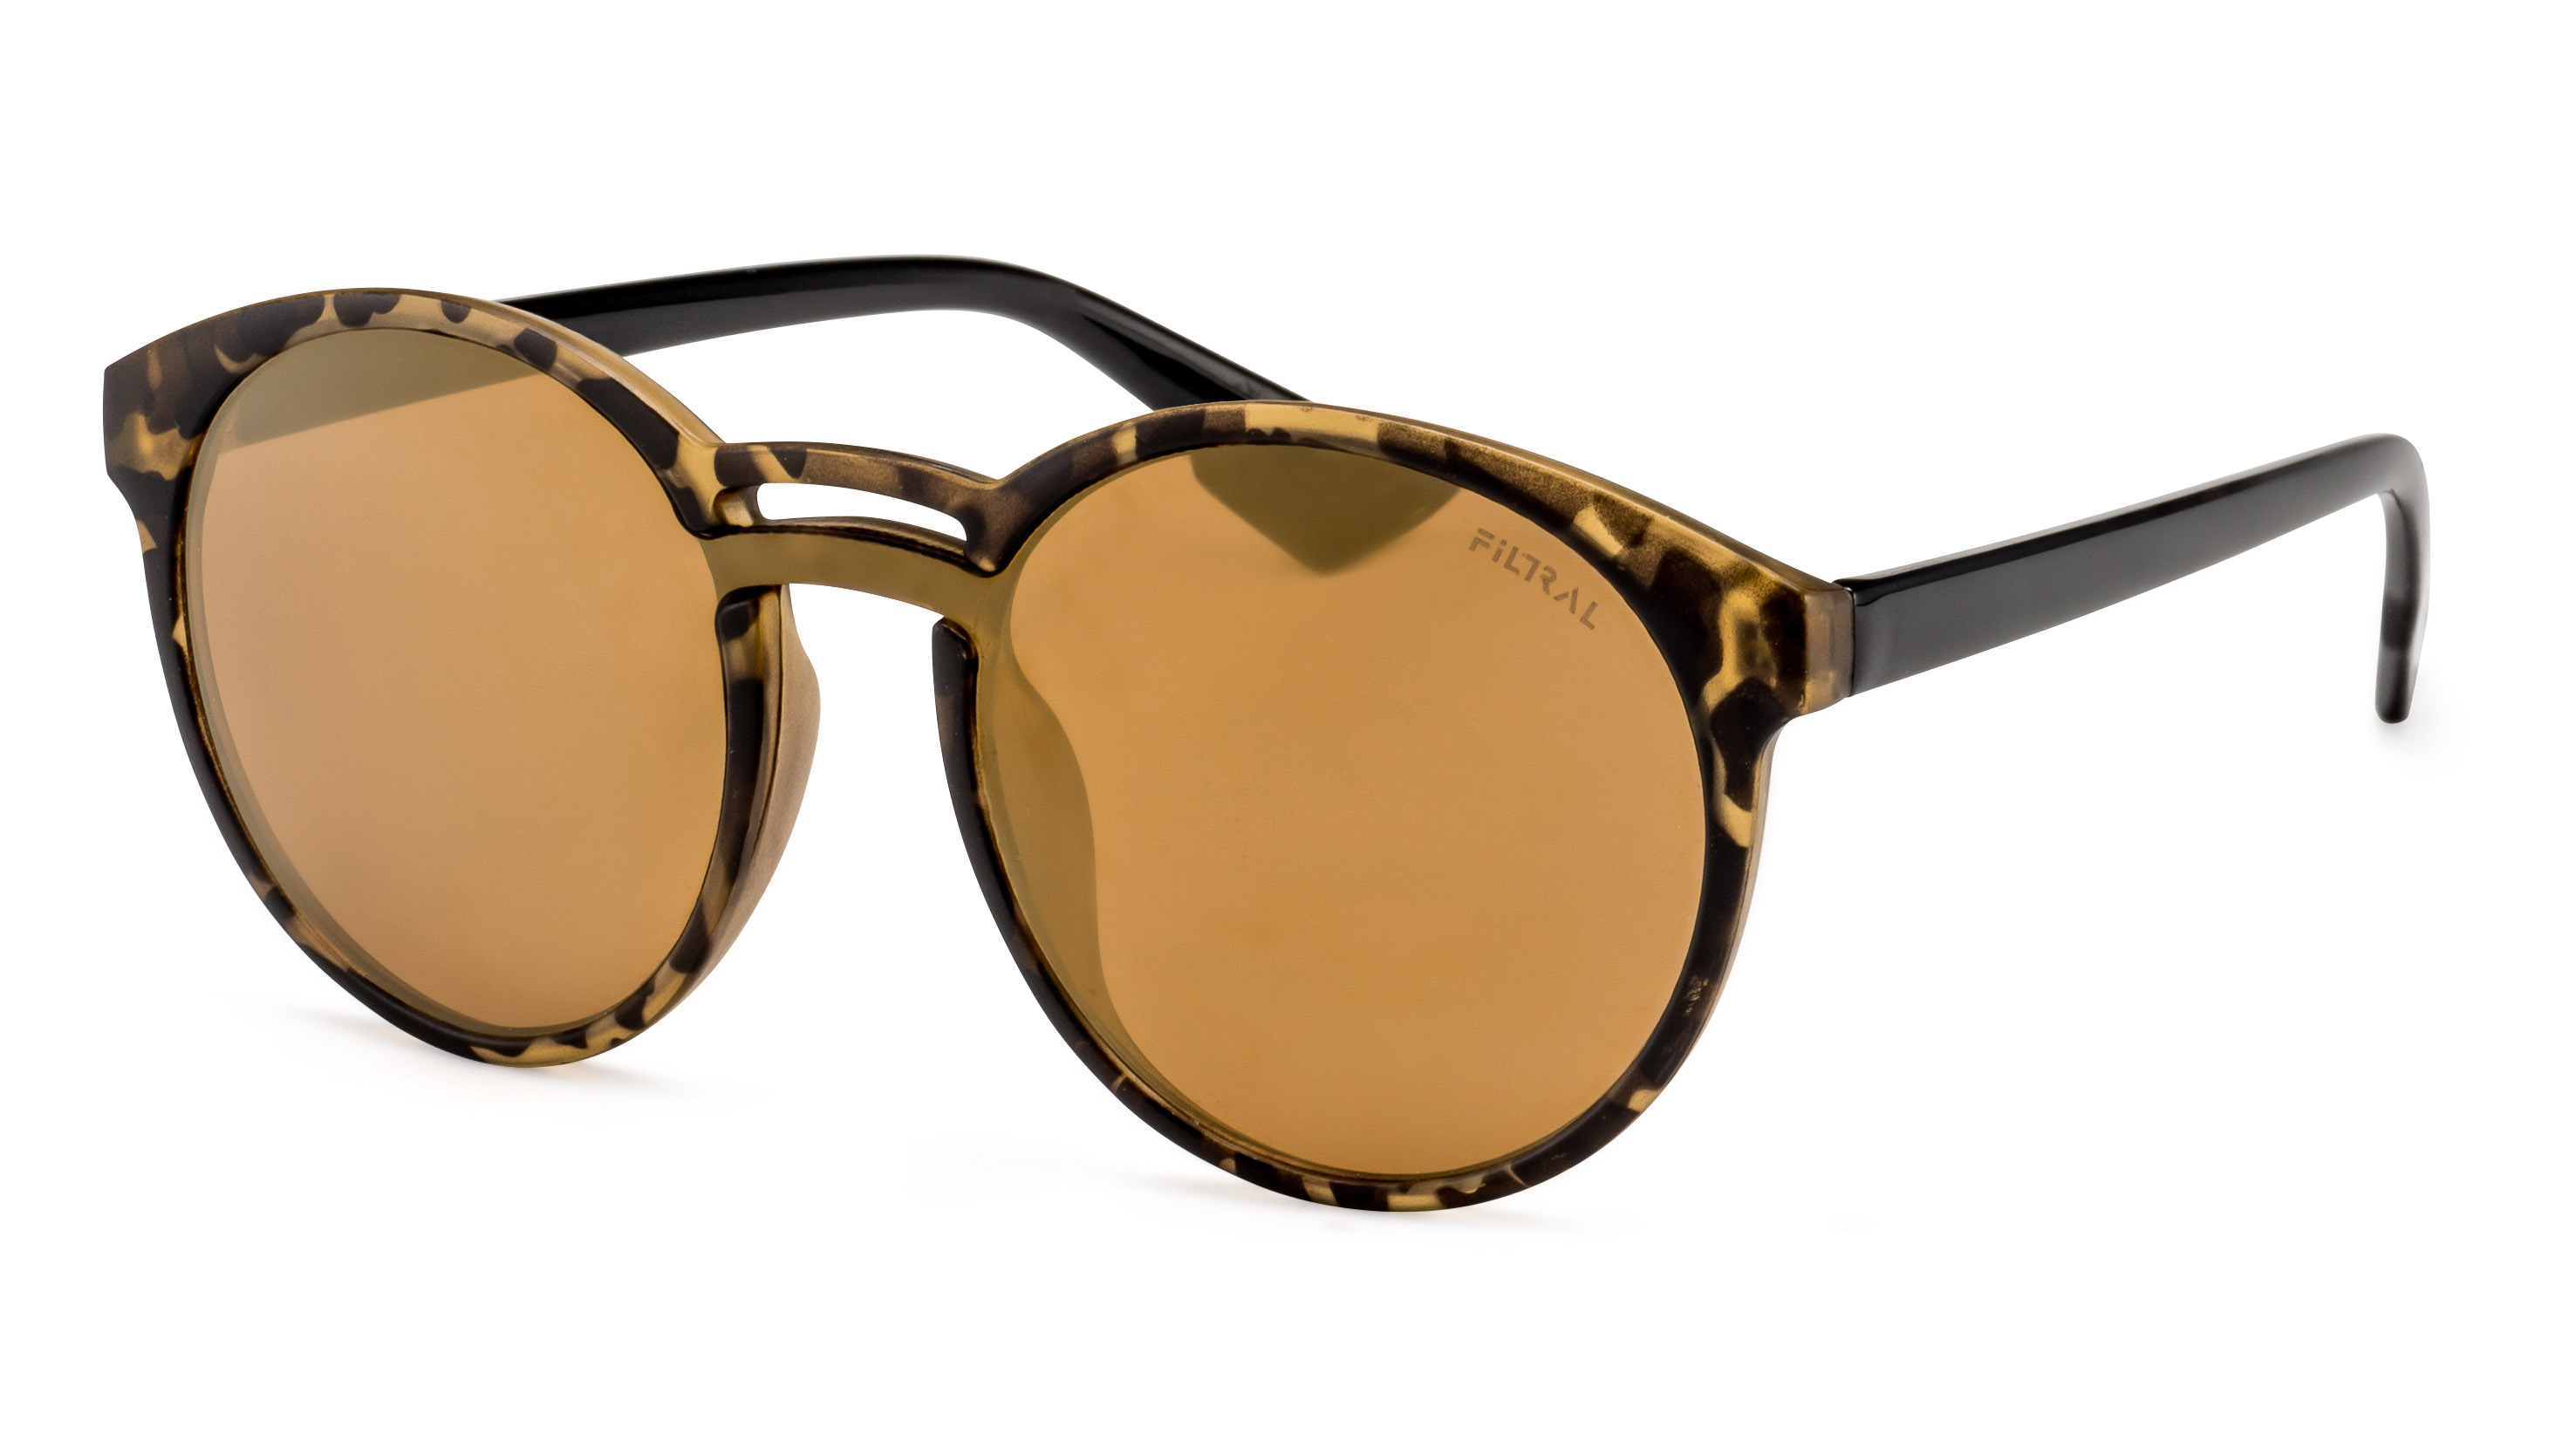 Main view sunglasses 3001039